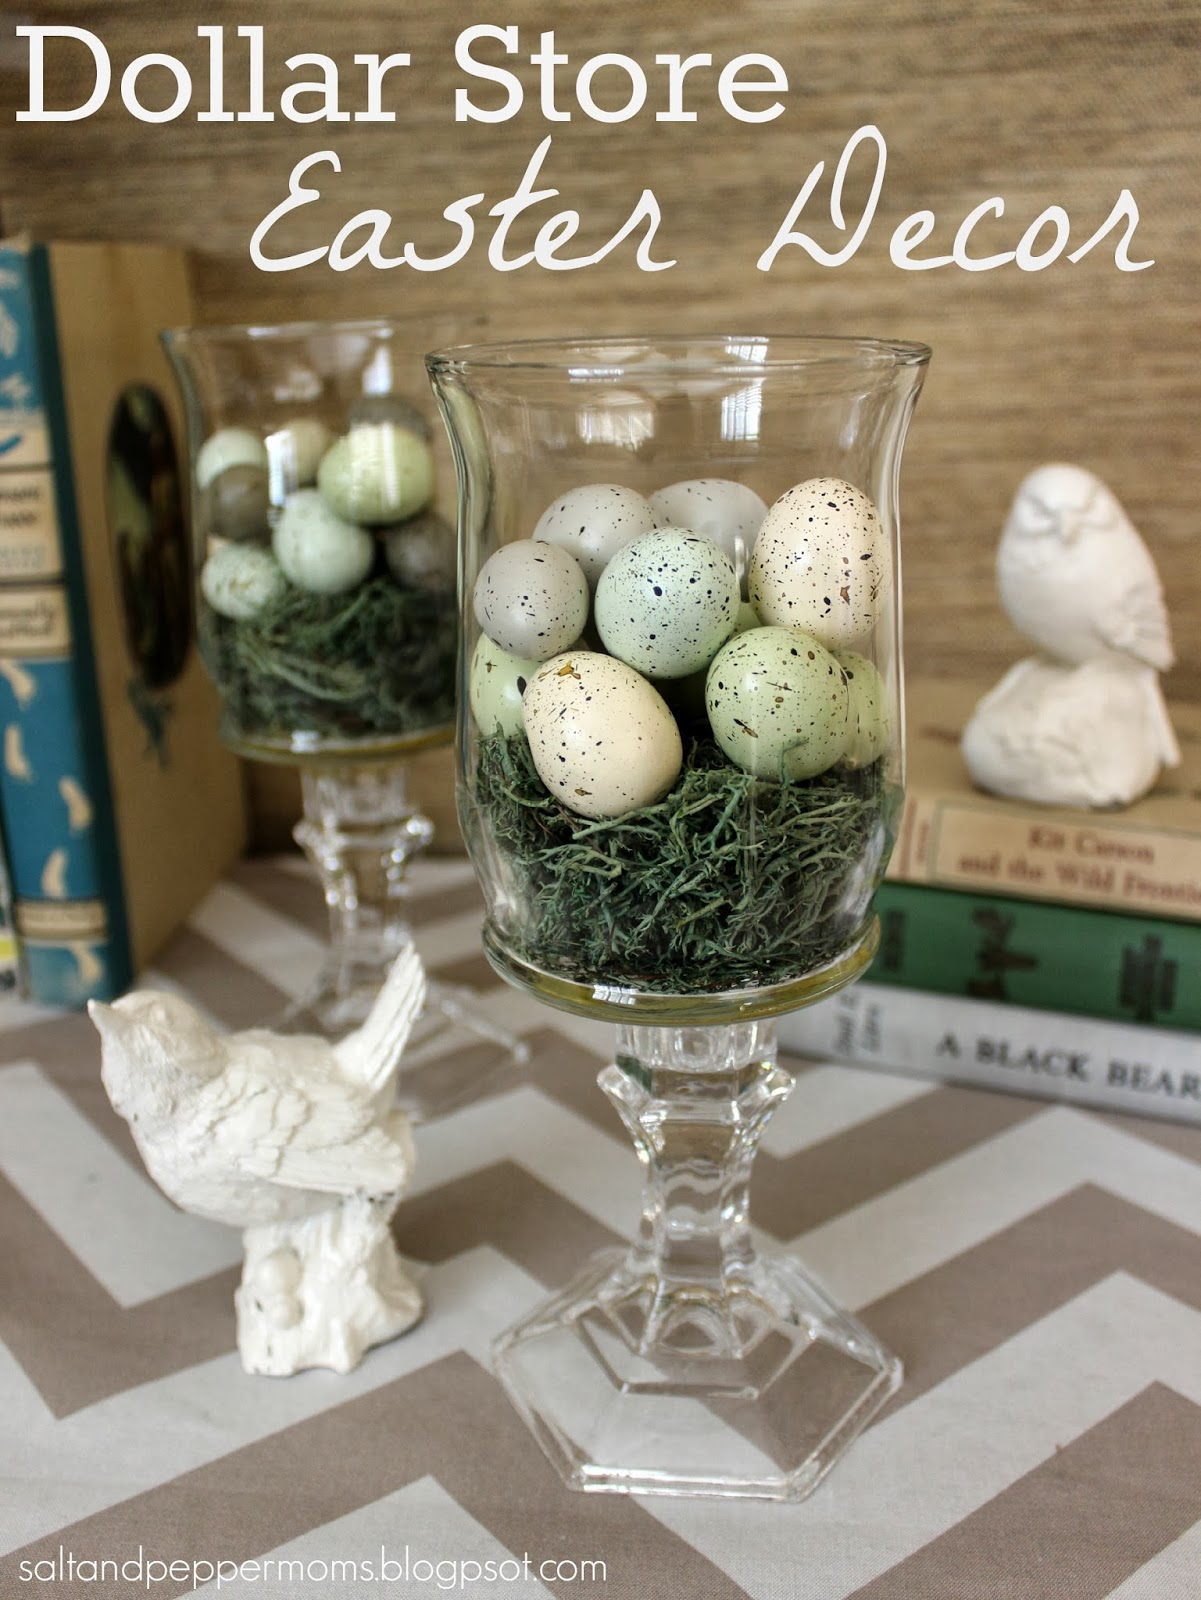 Elegant Easter Decor Ideas From The Dollar Store The Creek Line House